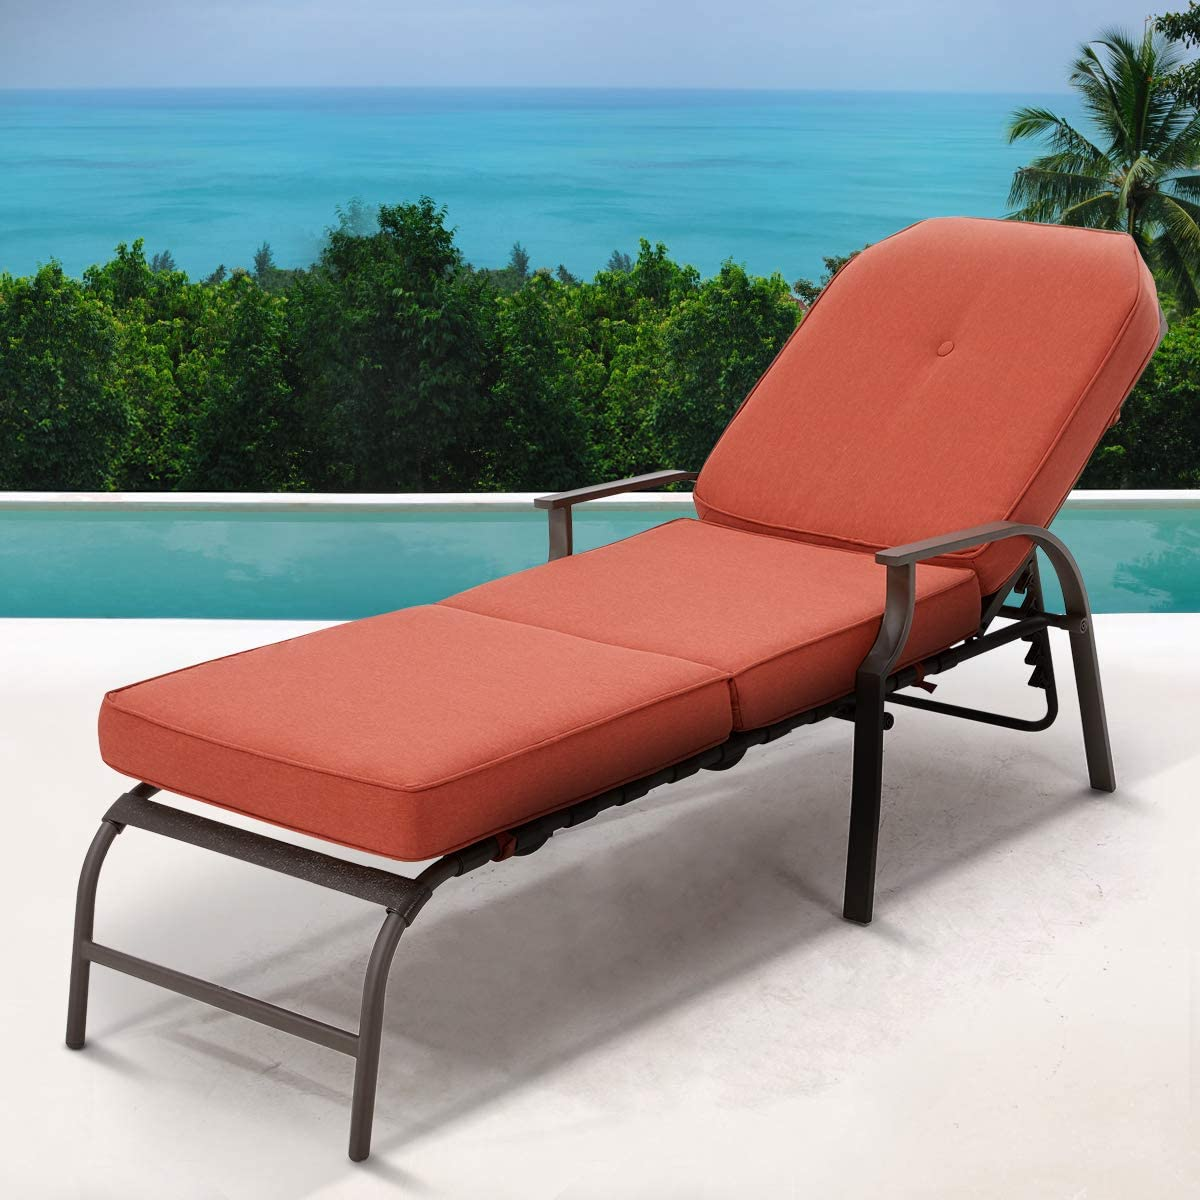 U-MAX At the price of surprise Adjustable Outdoor Chaise Lounge Patio Chair Super sale period limited